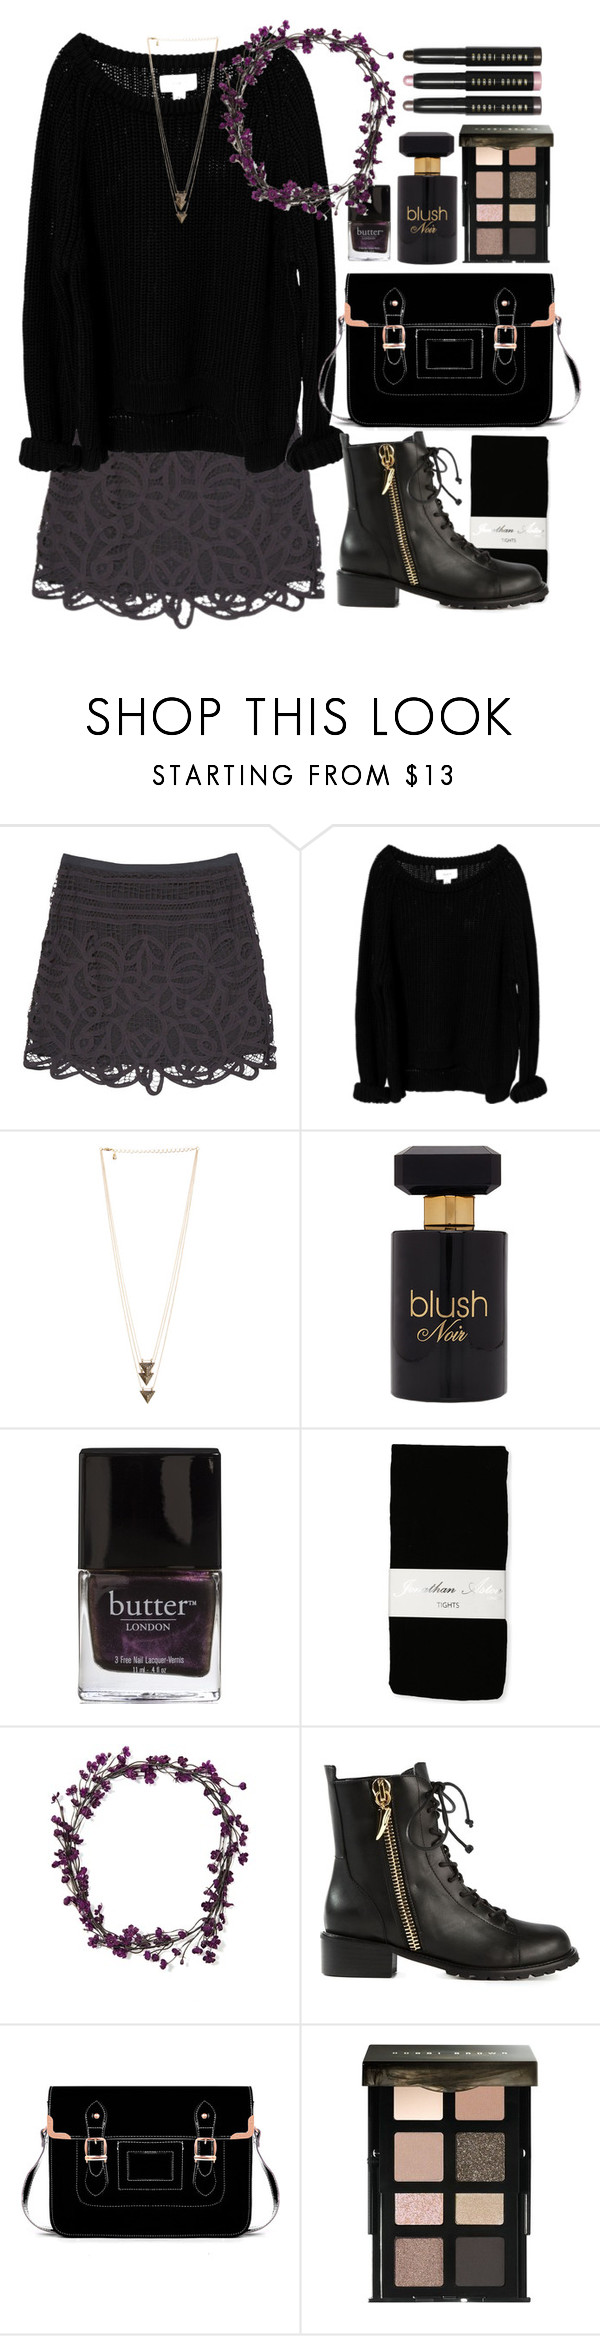 """""""Fall Floral Crown"""" by wildfawn ❤ liked on Polyvore featuring rag & bone, Issue 1.3, Forever 21, Butter London, Jonathan Aston, Berry, Giuseppe Zanotti and Bobbi Brown Cosmetics"""